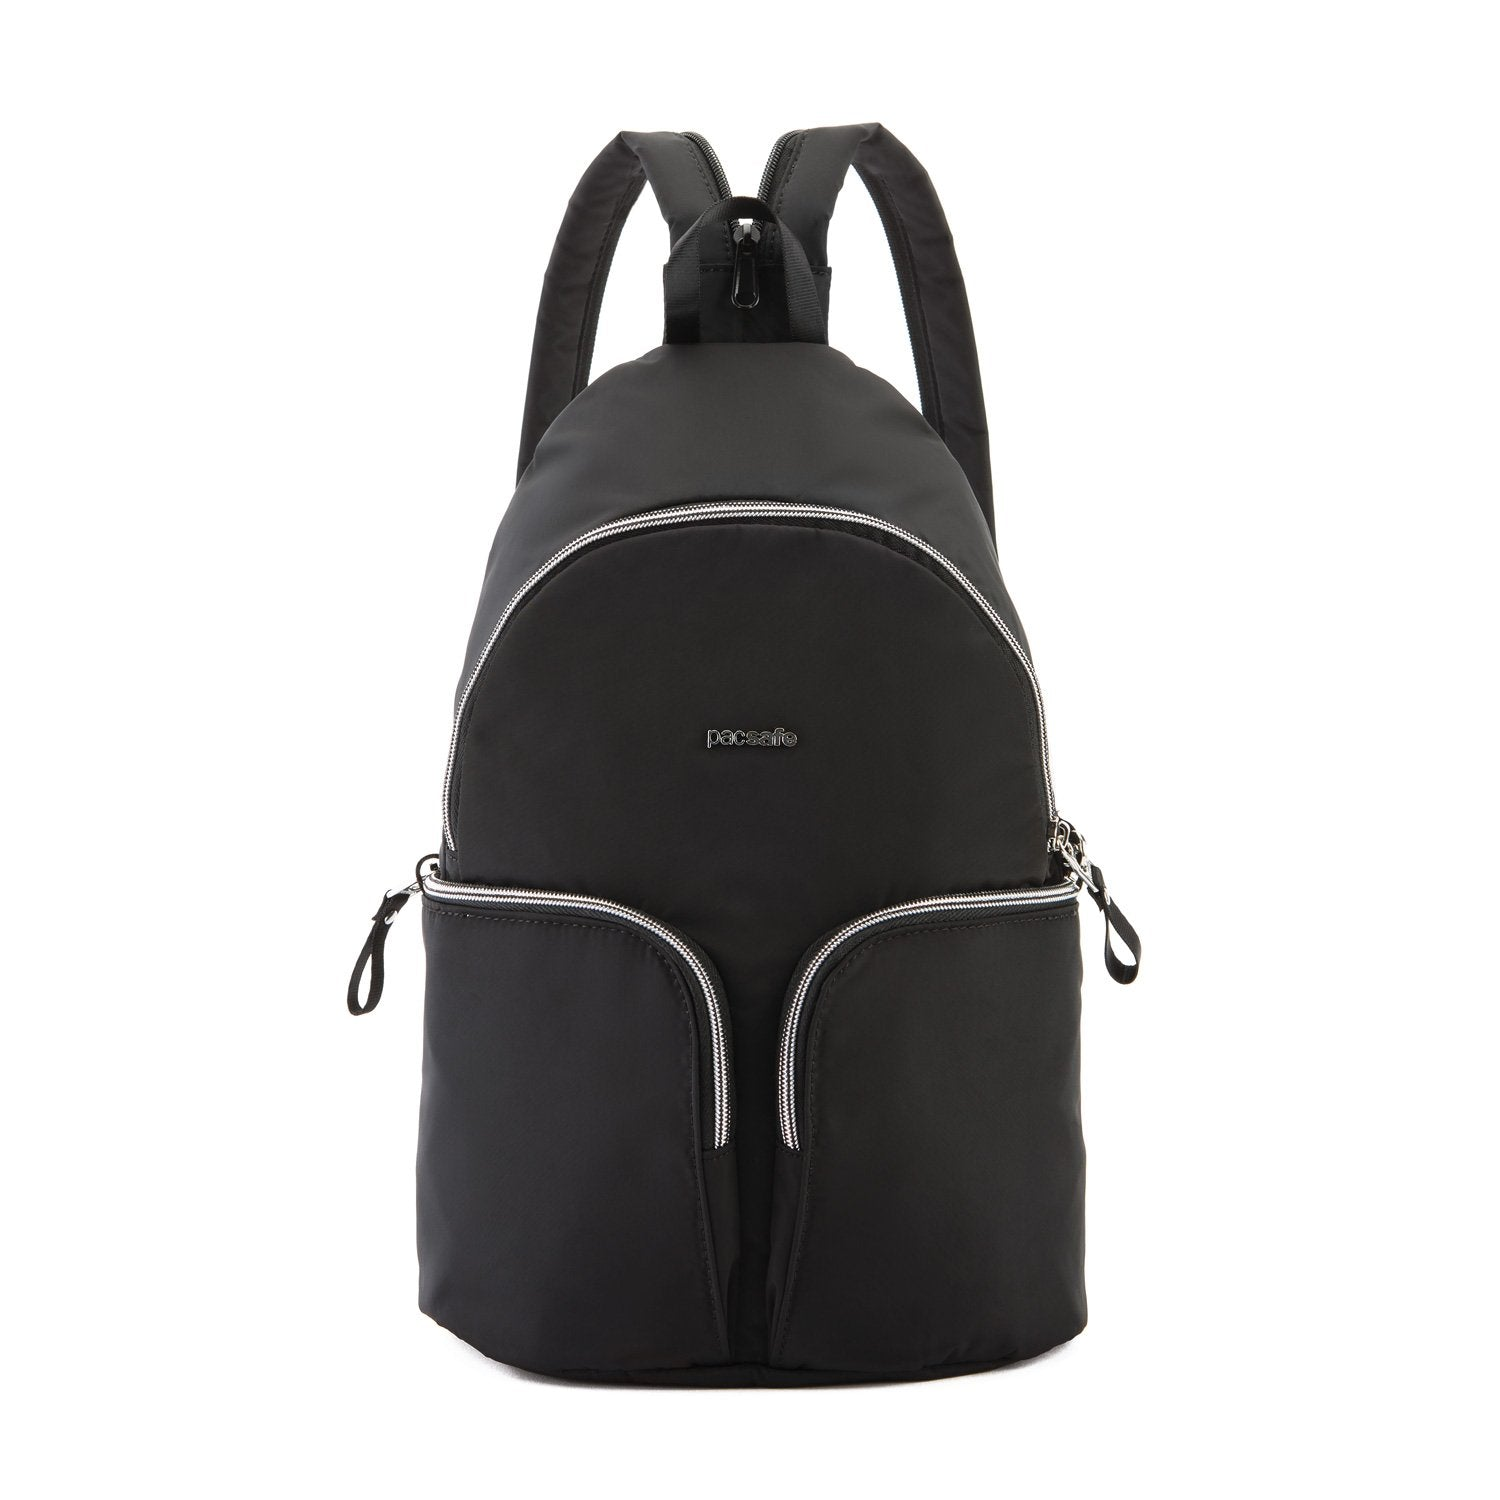 Stylesafe anti-theft sling backpack